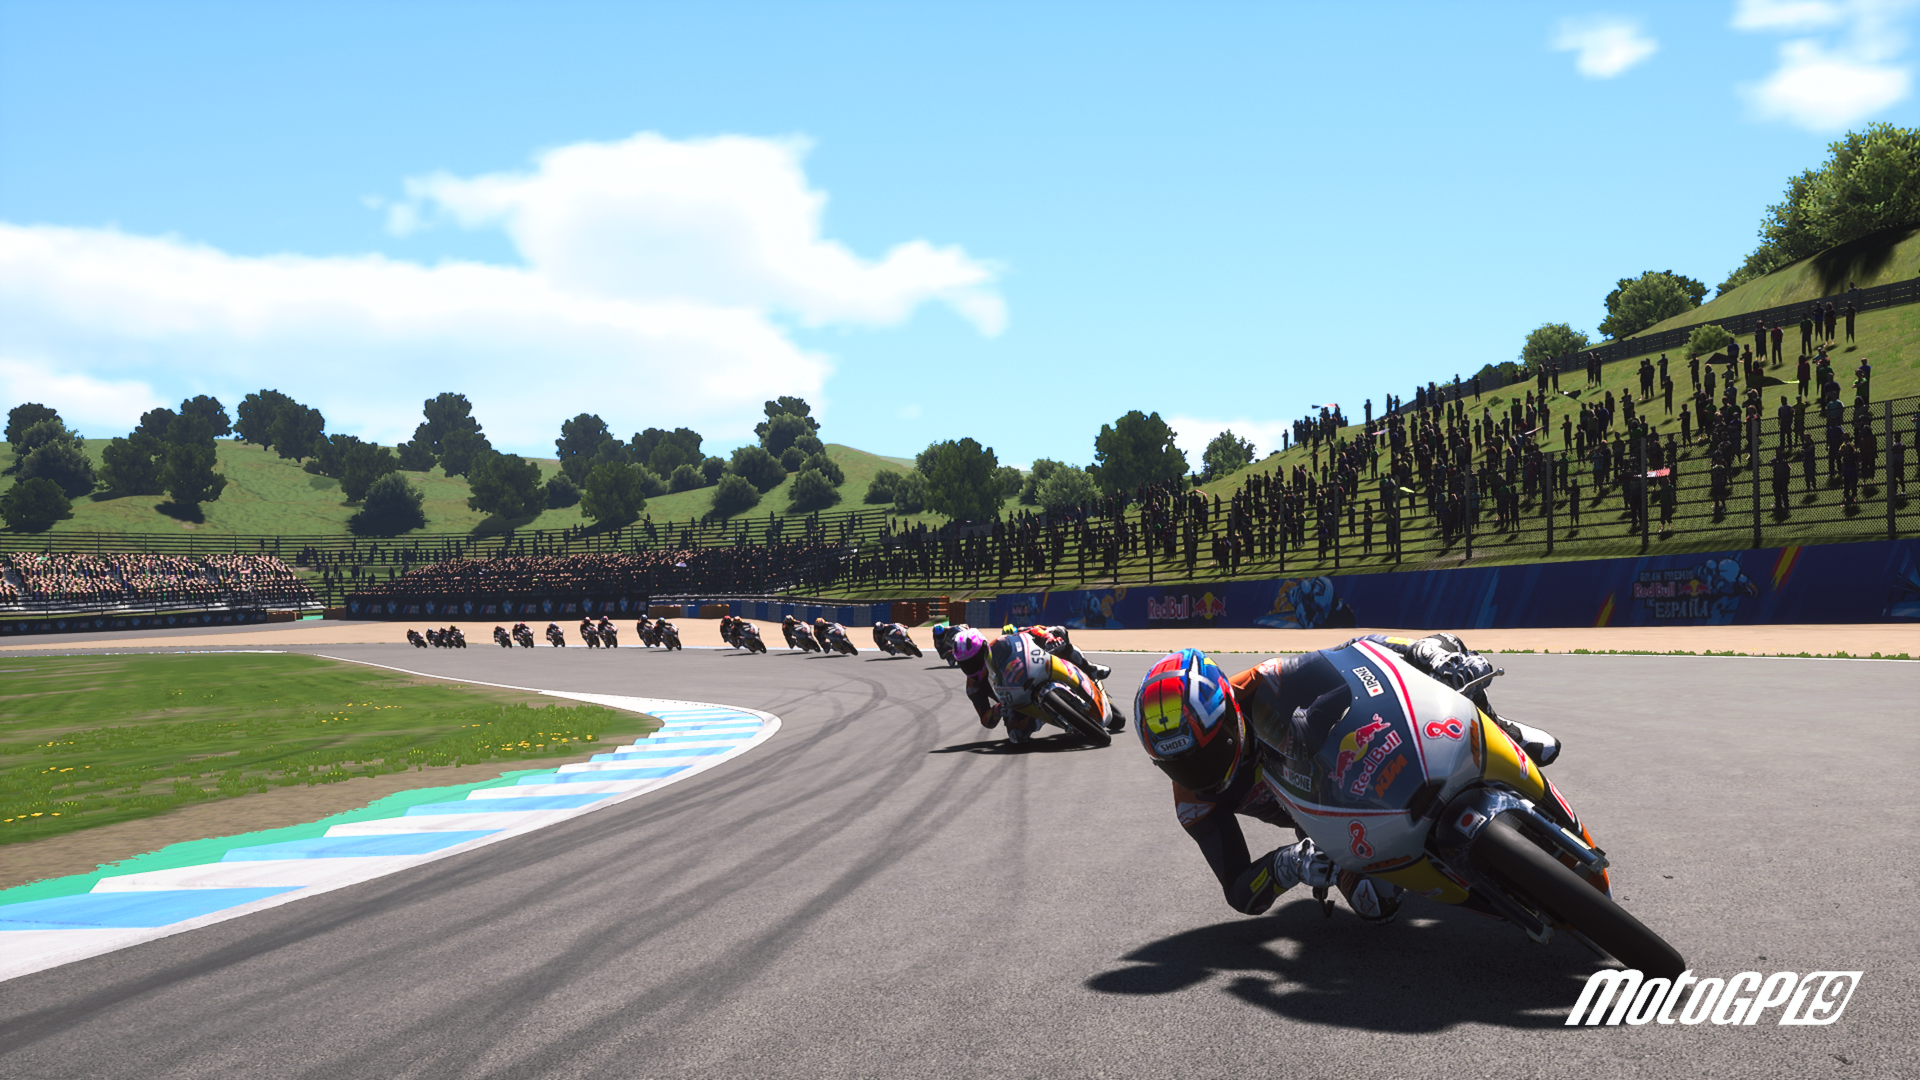 Motogp 19 Review Back On Track Ps4 Playstation Lifestyle